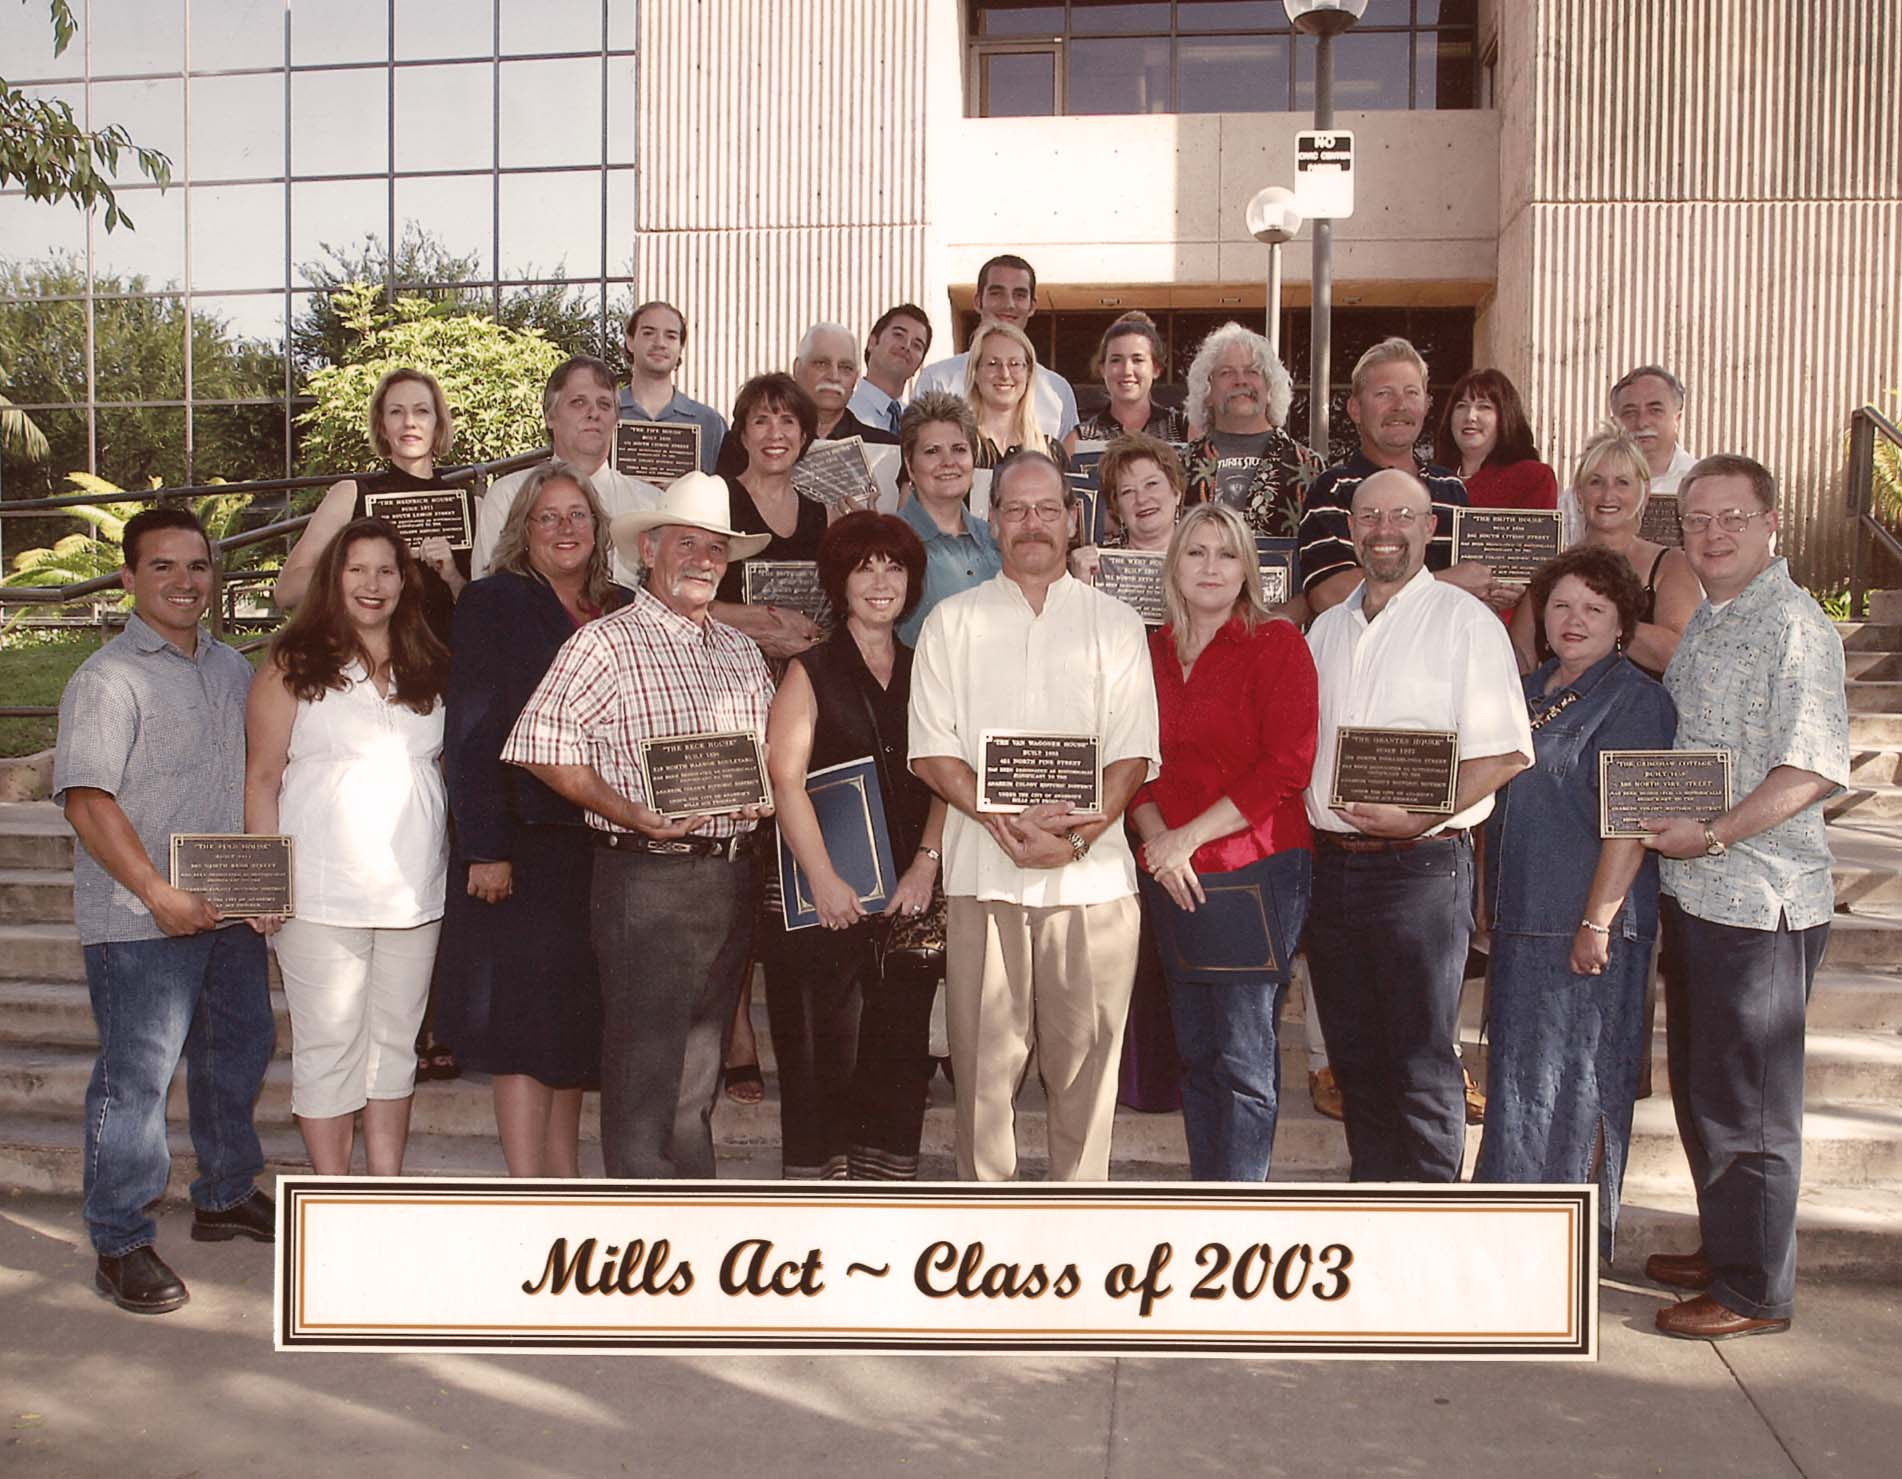 Group photo with the onwers holding their plaques for the Mills Act Participating Properties from 2003